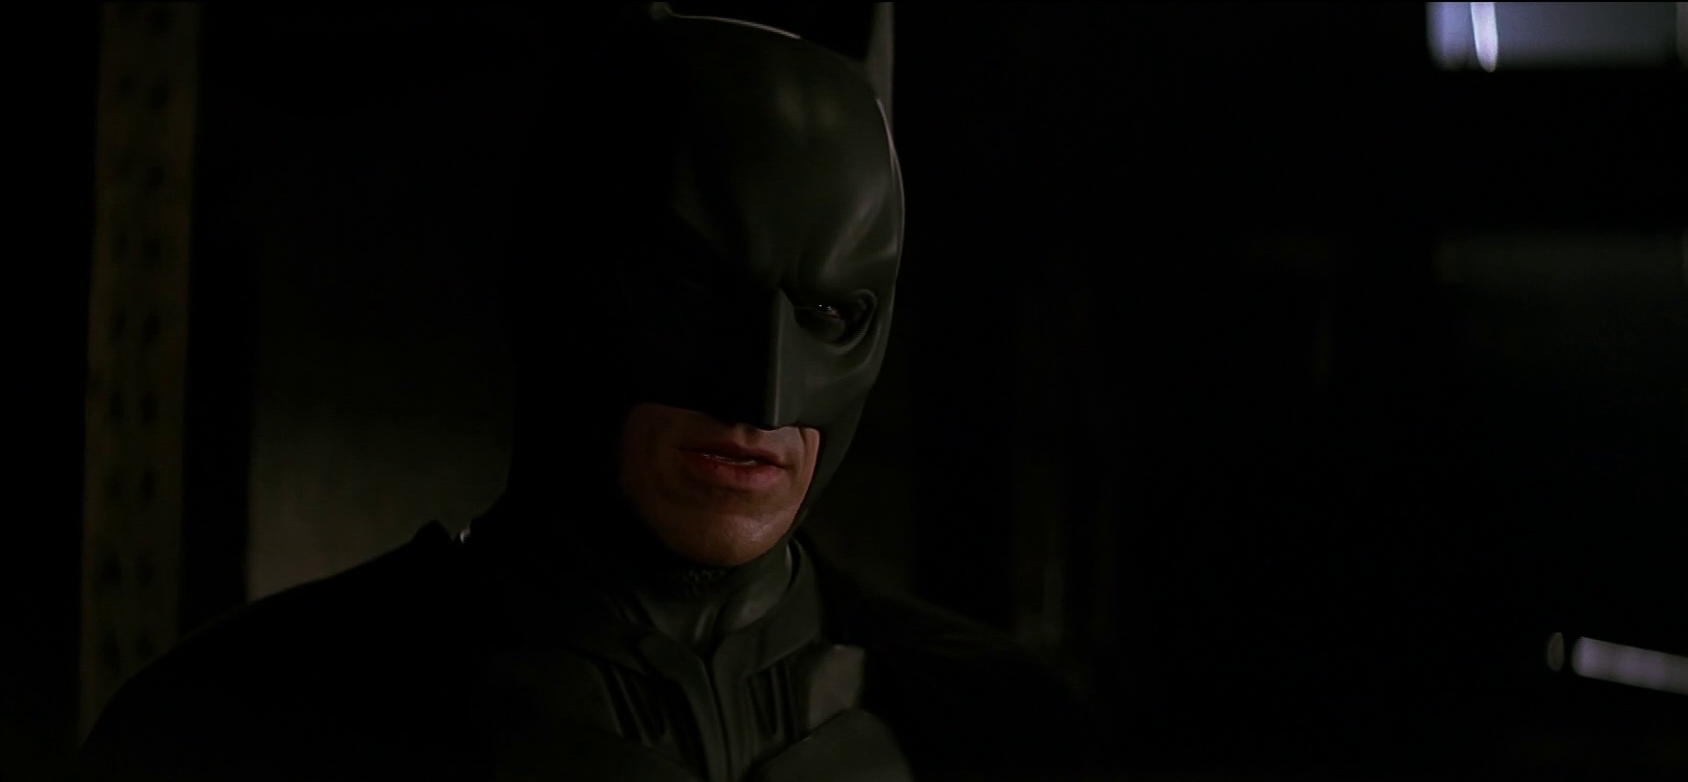 The Dark Knight (Le Chevalier Noir, 2008) de Christopher Nolan : Batman contre Le Joker; et la fin (HD)